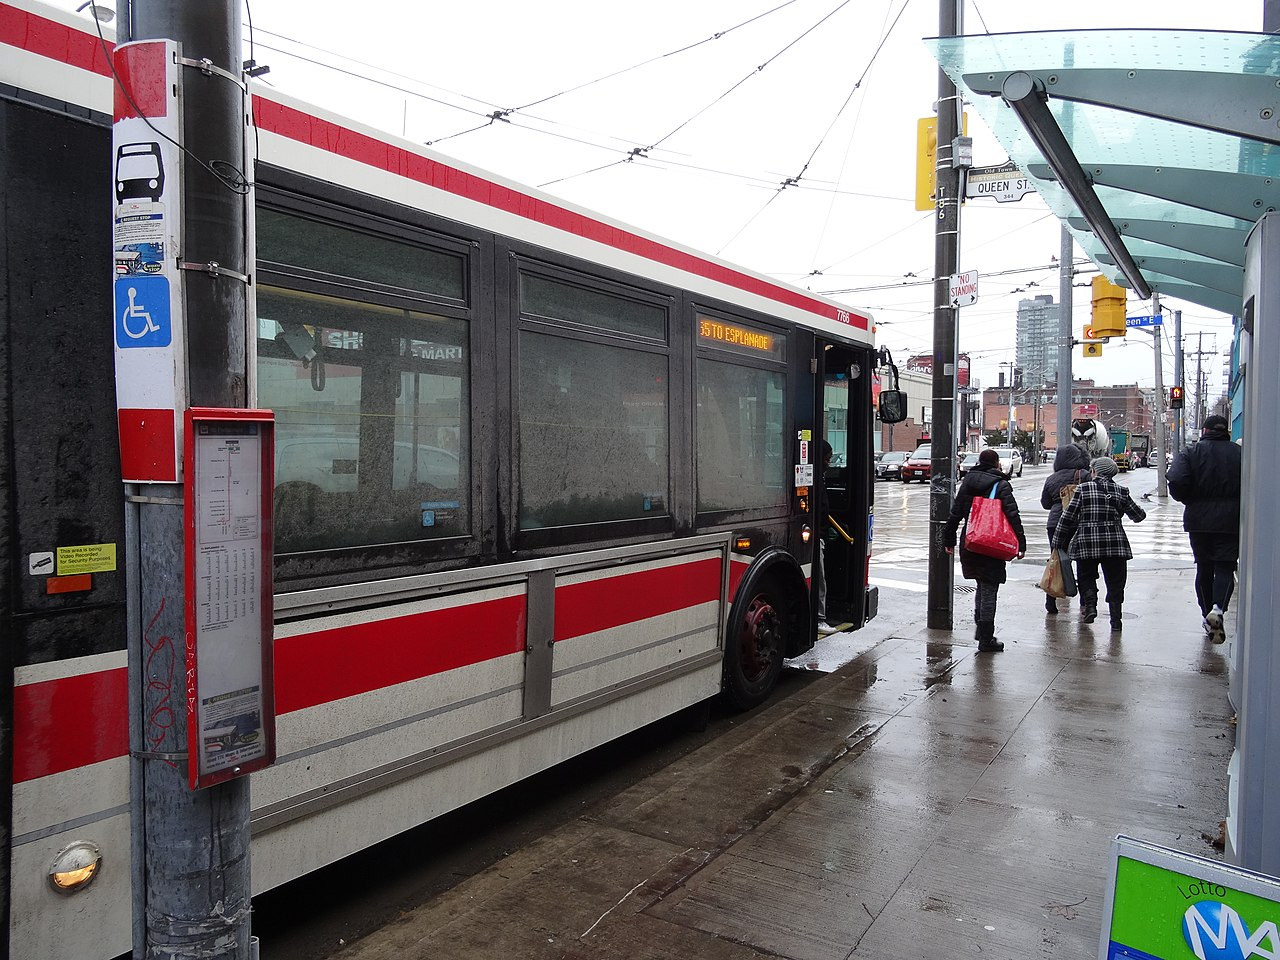 file ttc bus 7766 at parliament and queen 2014 12 17 a 16045901621 jpg wikimedia commons. Black Bedroom Furniture Sets. Home Design Ideas